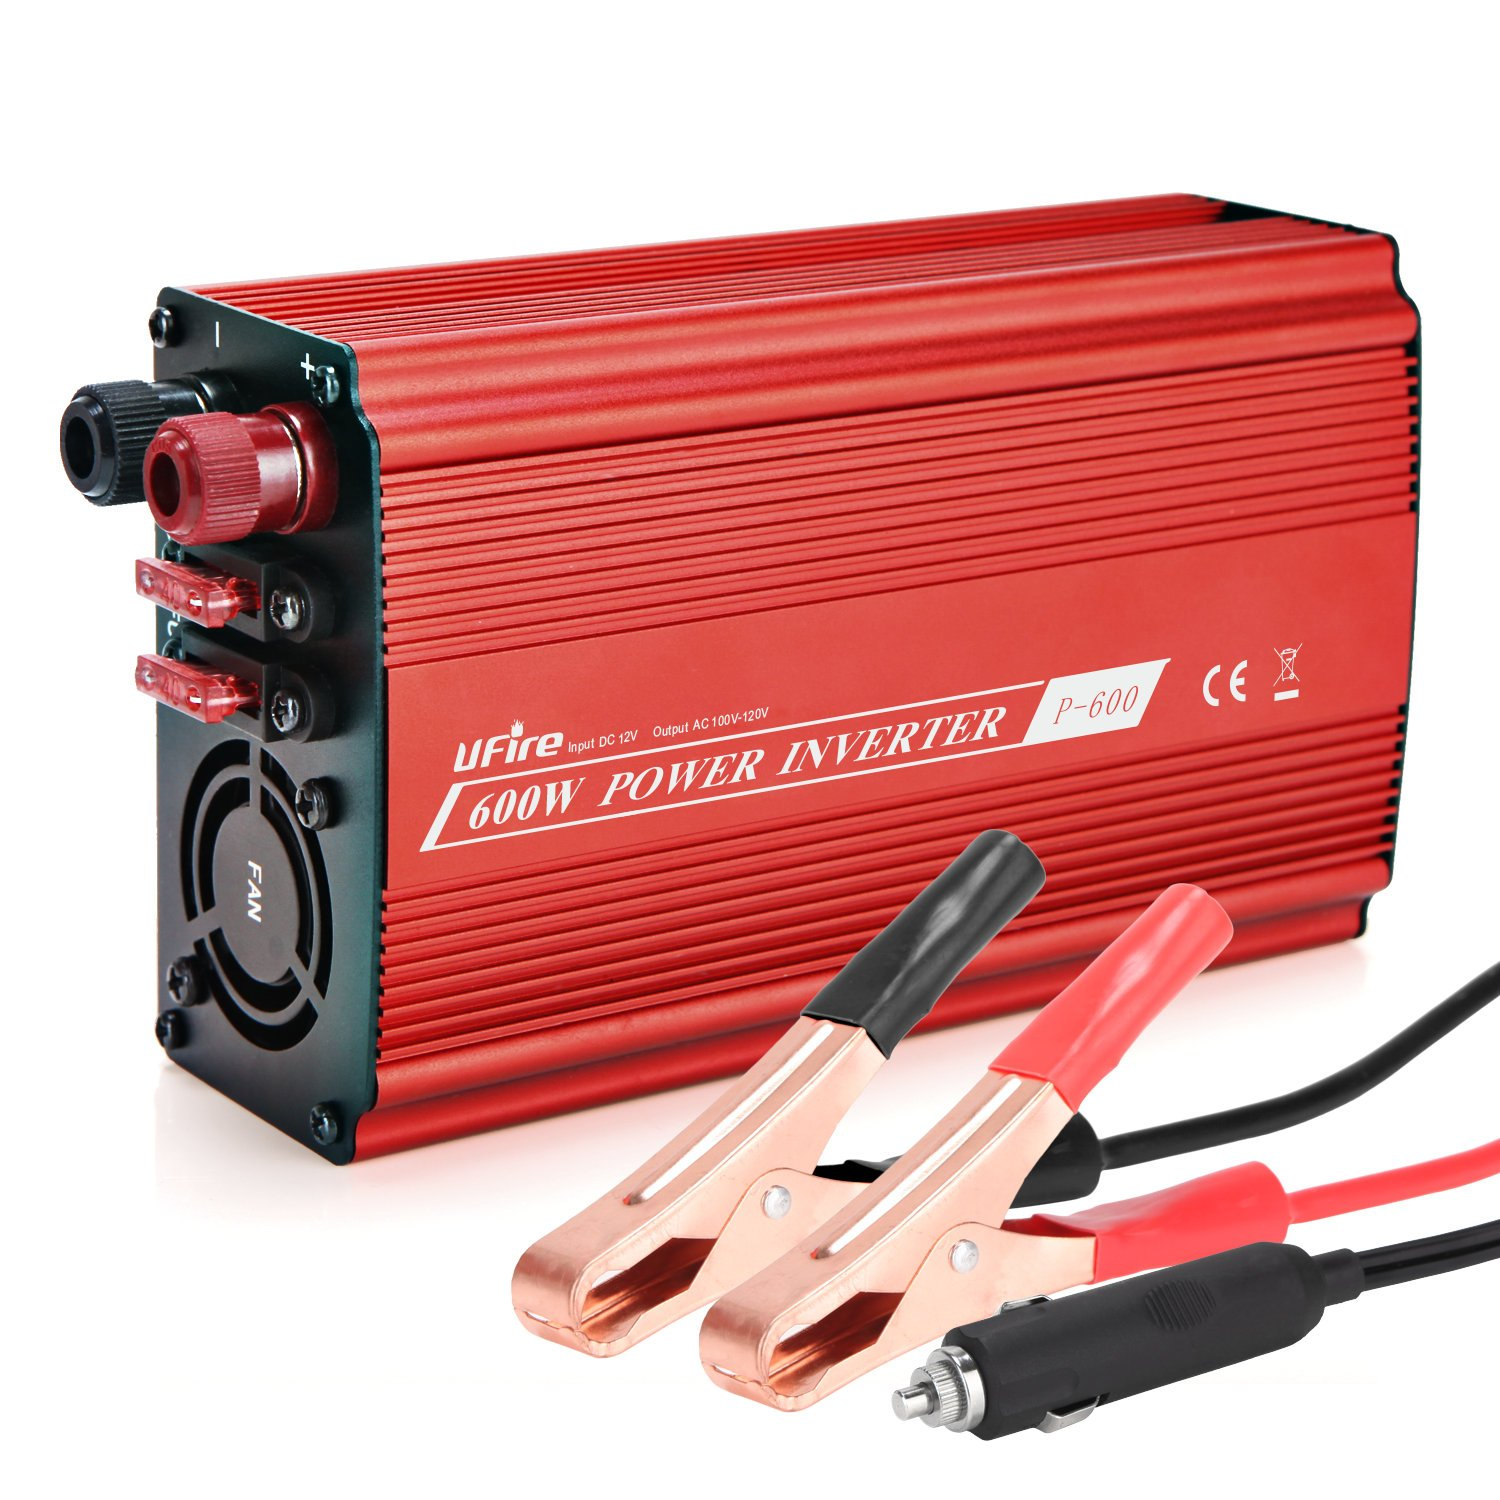 UFire 600W Car Power Inverter DC 12V to 110V AC Car Converter with 4.8A Dual USB Ports and Dual AC Outlets Smart Charger Travel Kit Portable Adapter -Red